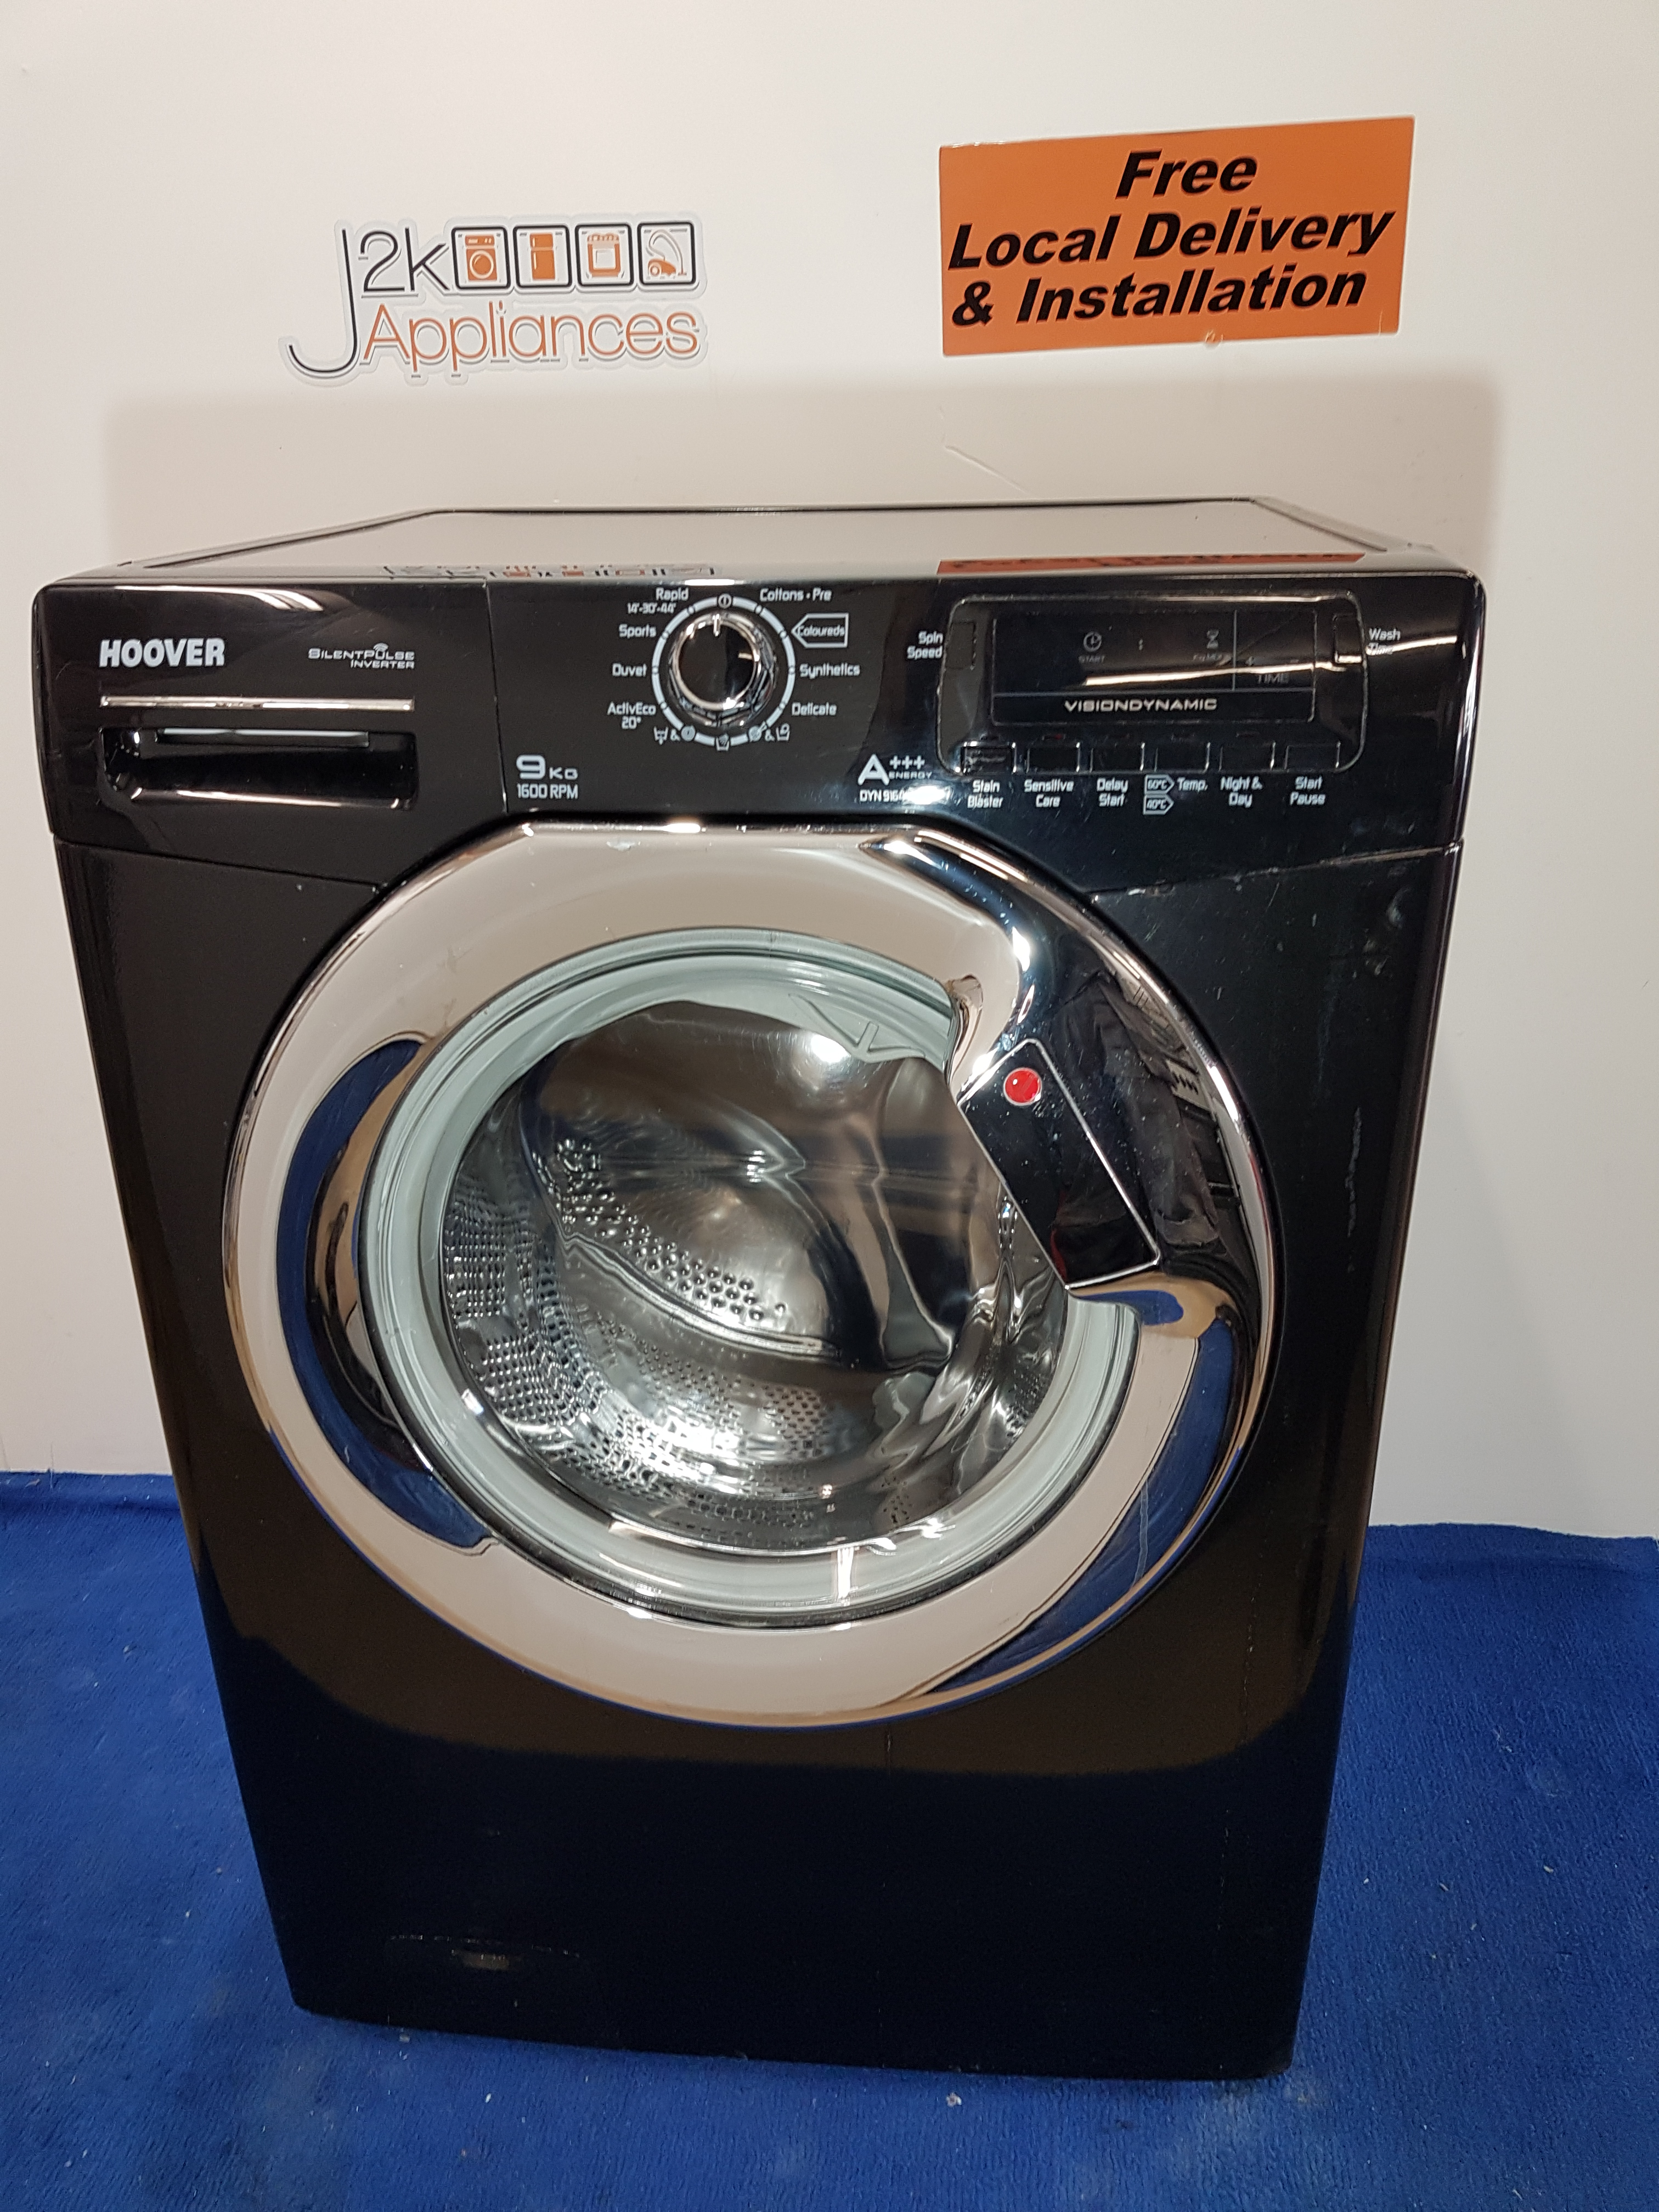 how to cancel delay start on hoover washing machine